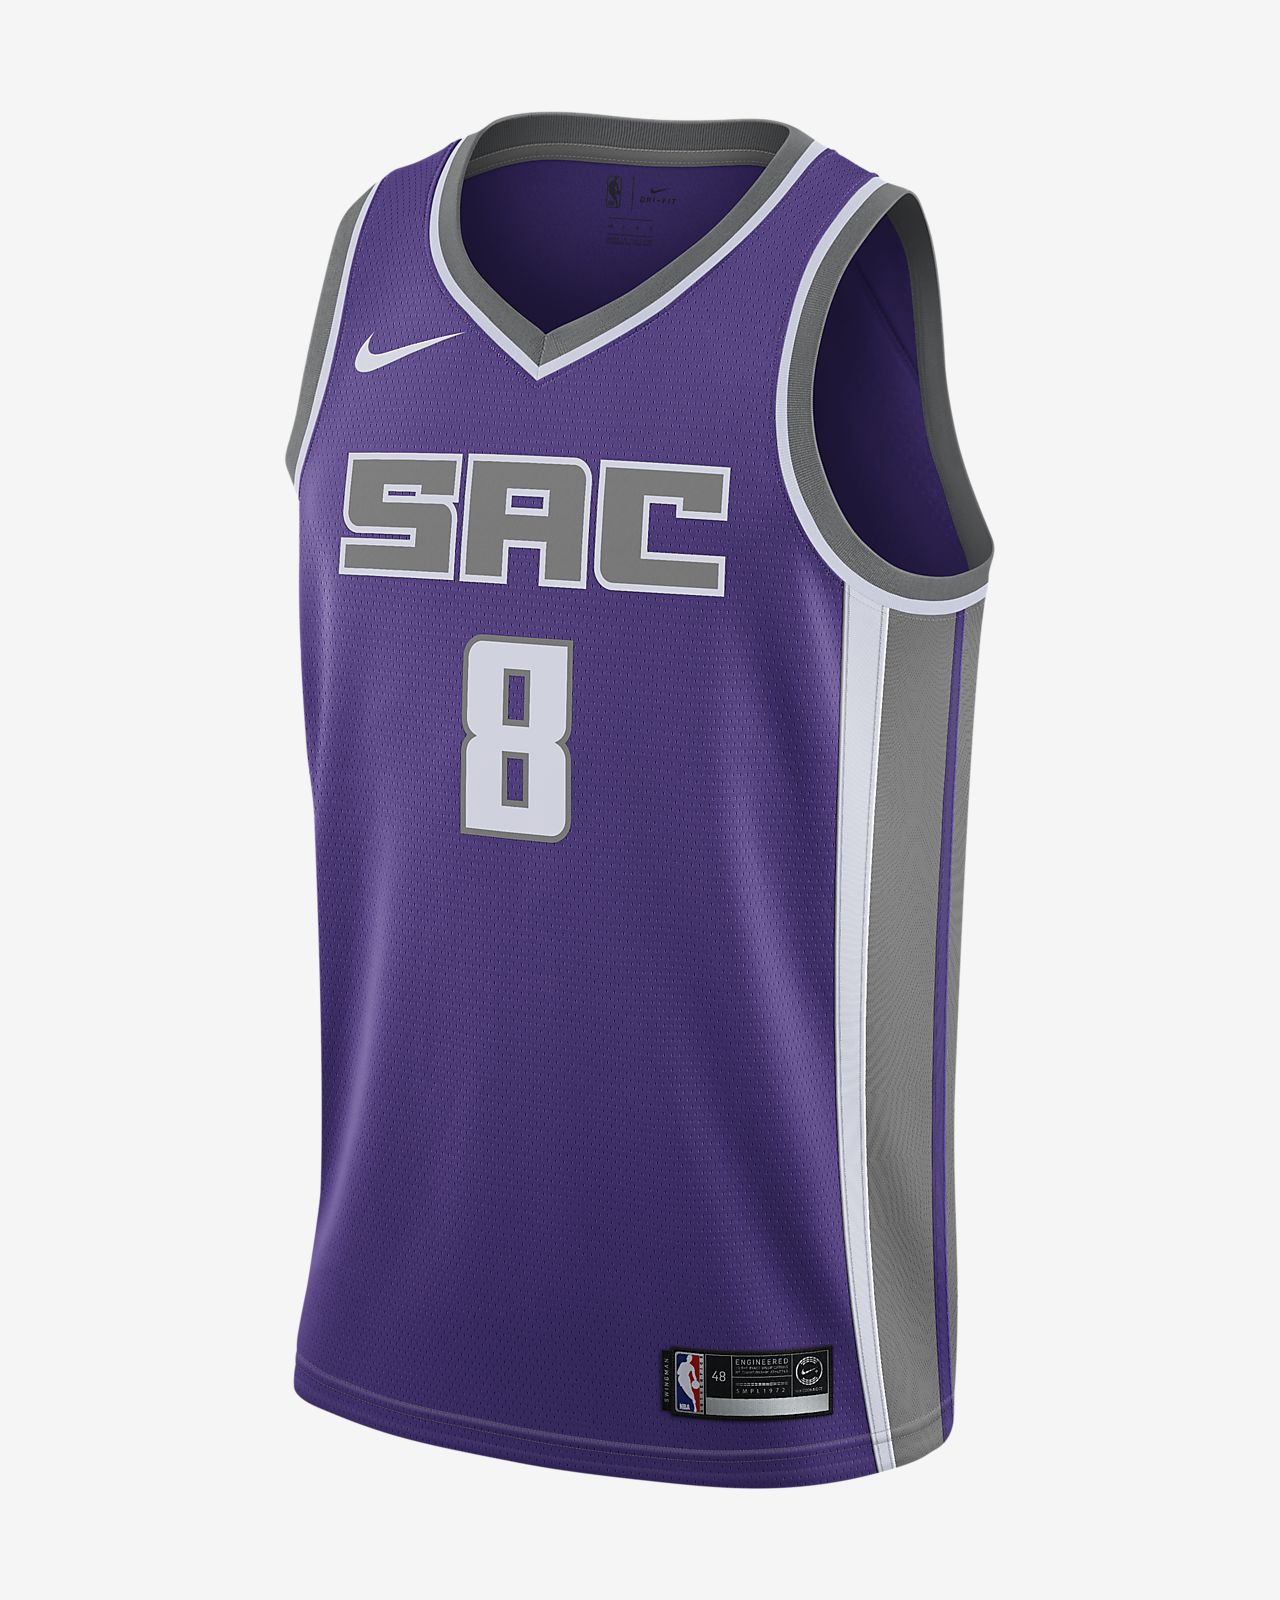 Maillot Nike NBA Swingman Bogdan Bogdanović Kings Icon Edition